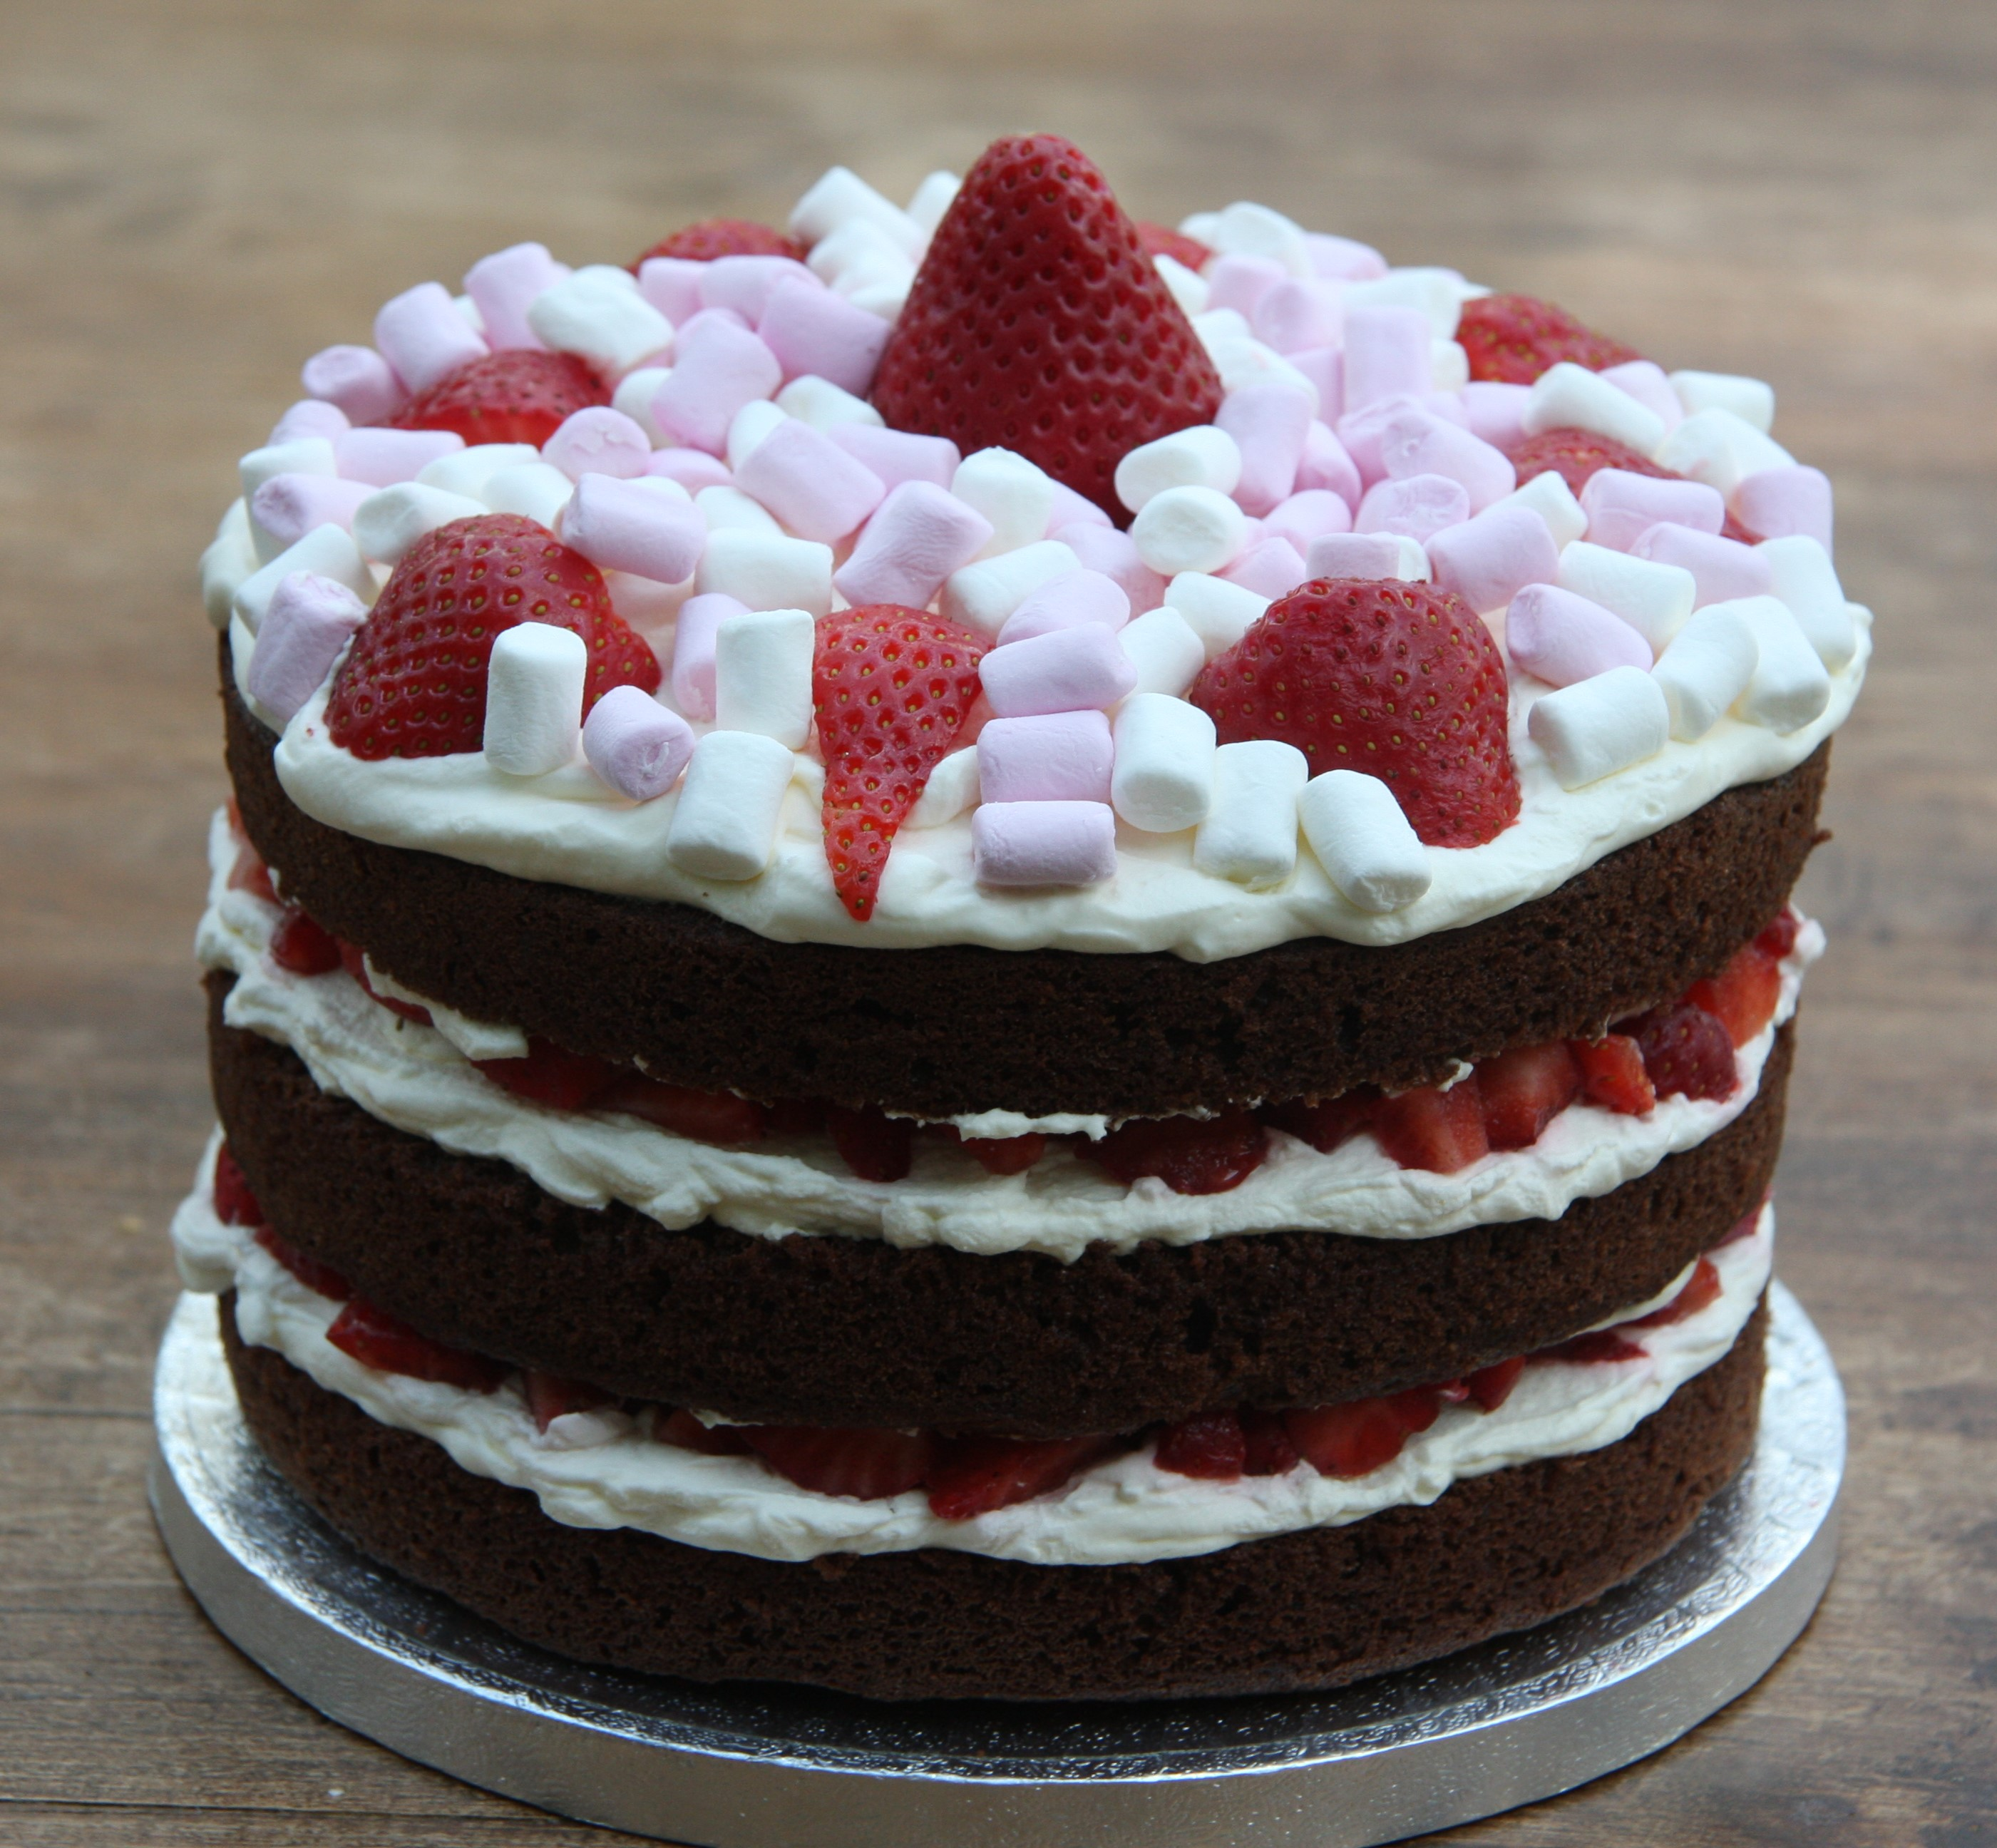 Pleasant Chocolate Birthday Cake With Strawberries And Cream And New Funny Birthday Cards Online Overcheapnameinfo